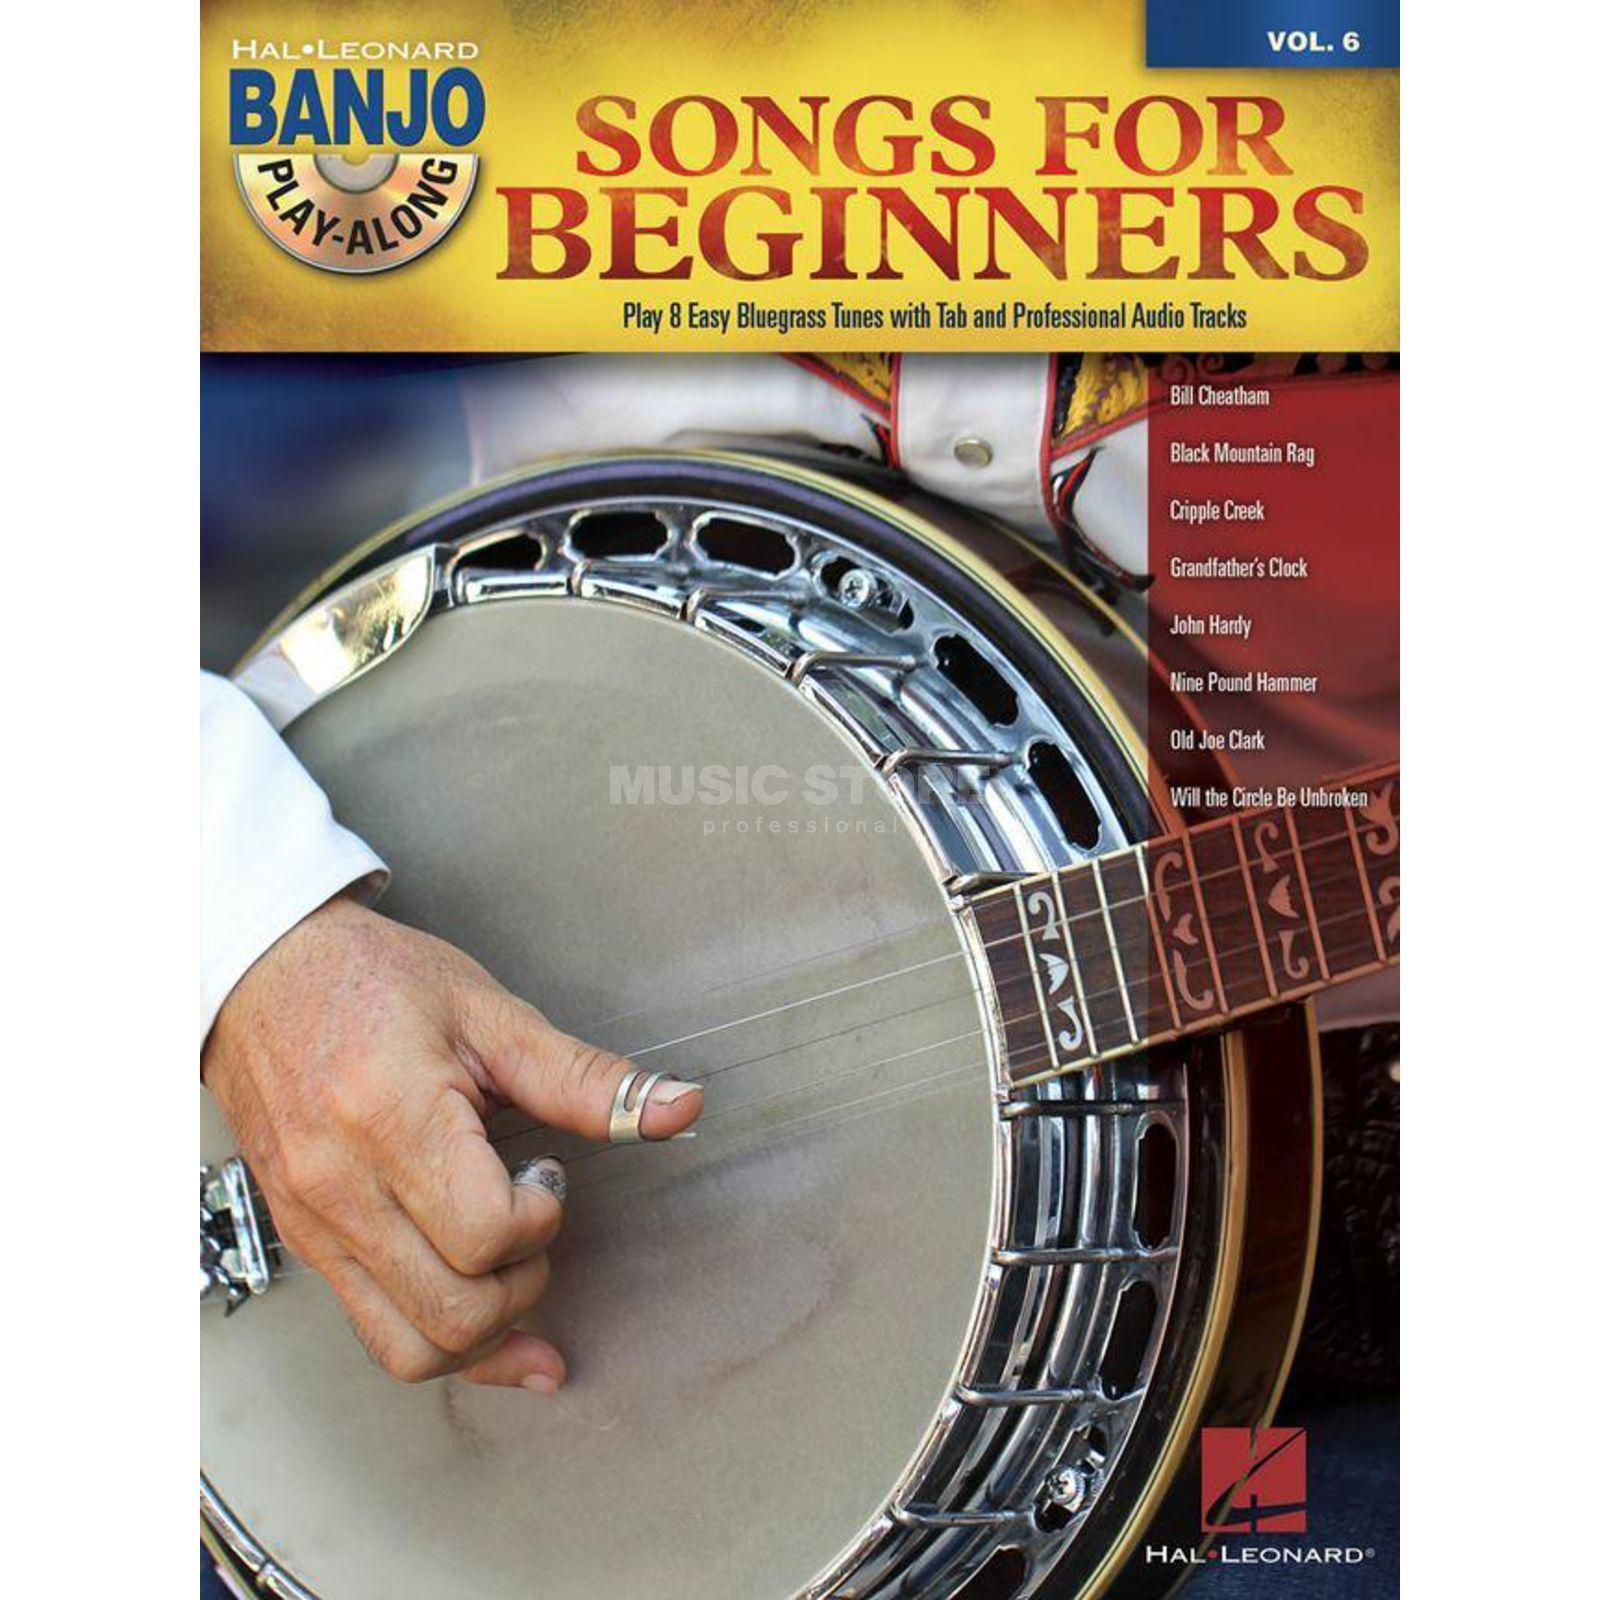 Hal Leonard Banjo Play-Along: Songs for Beginners Vol. 6 Produktbillede